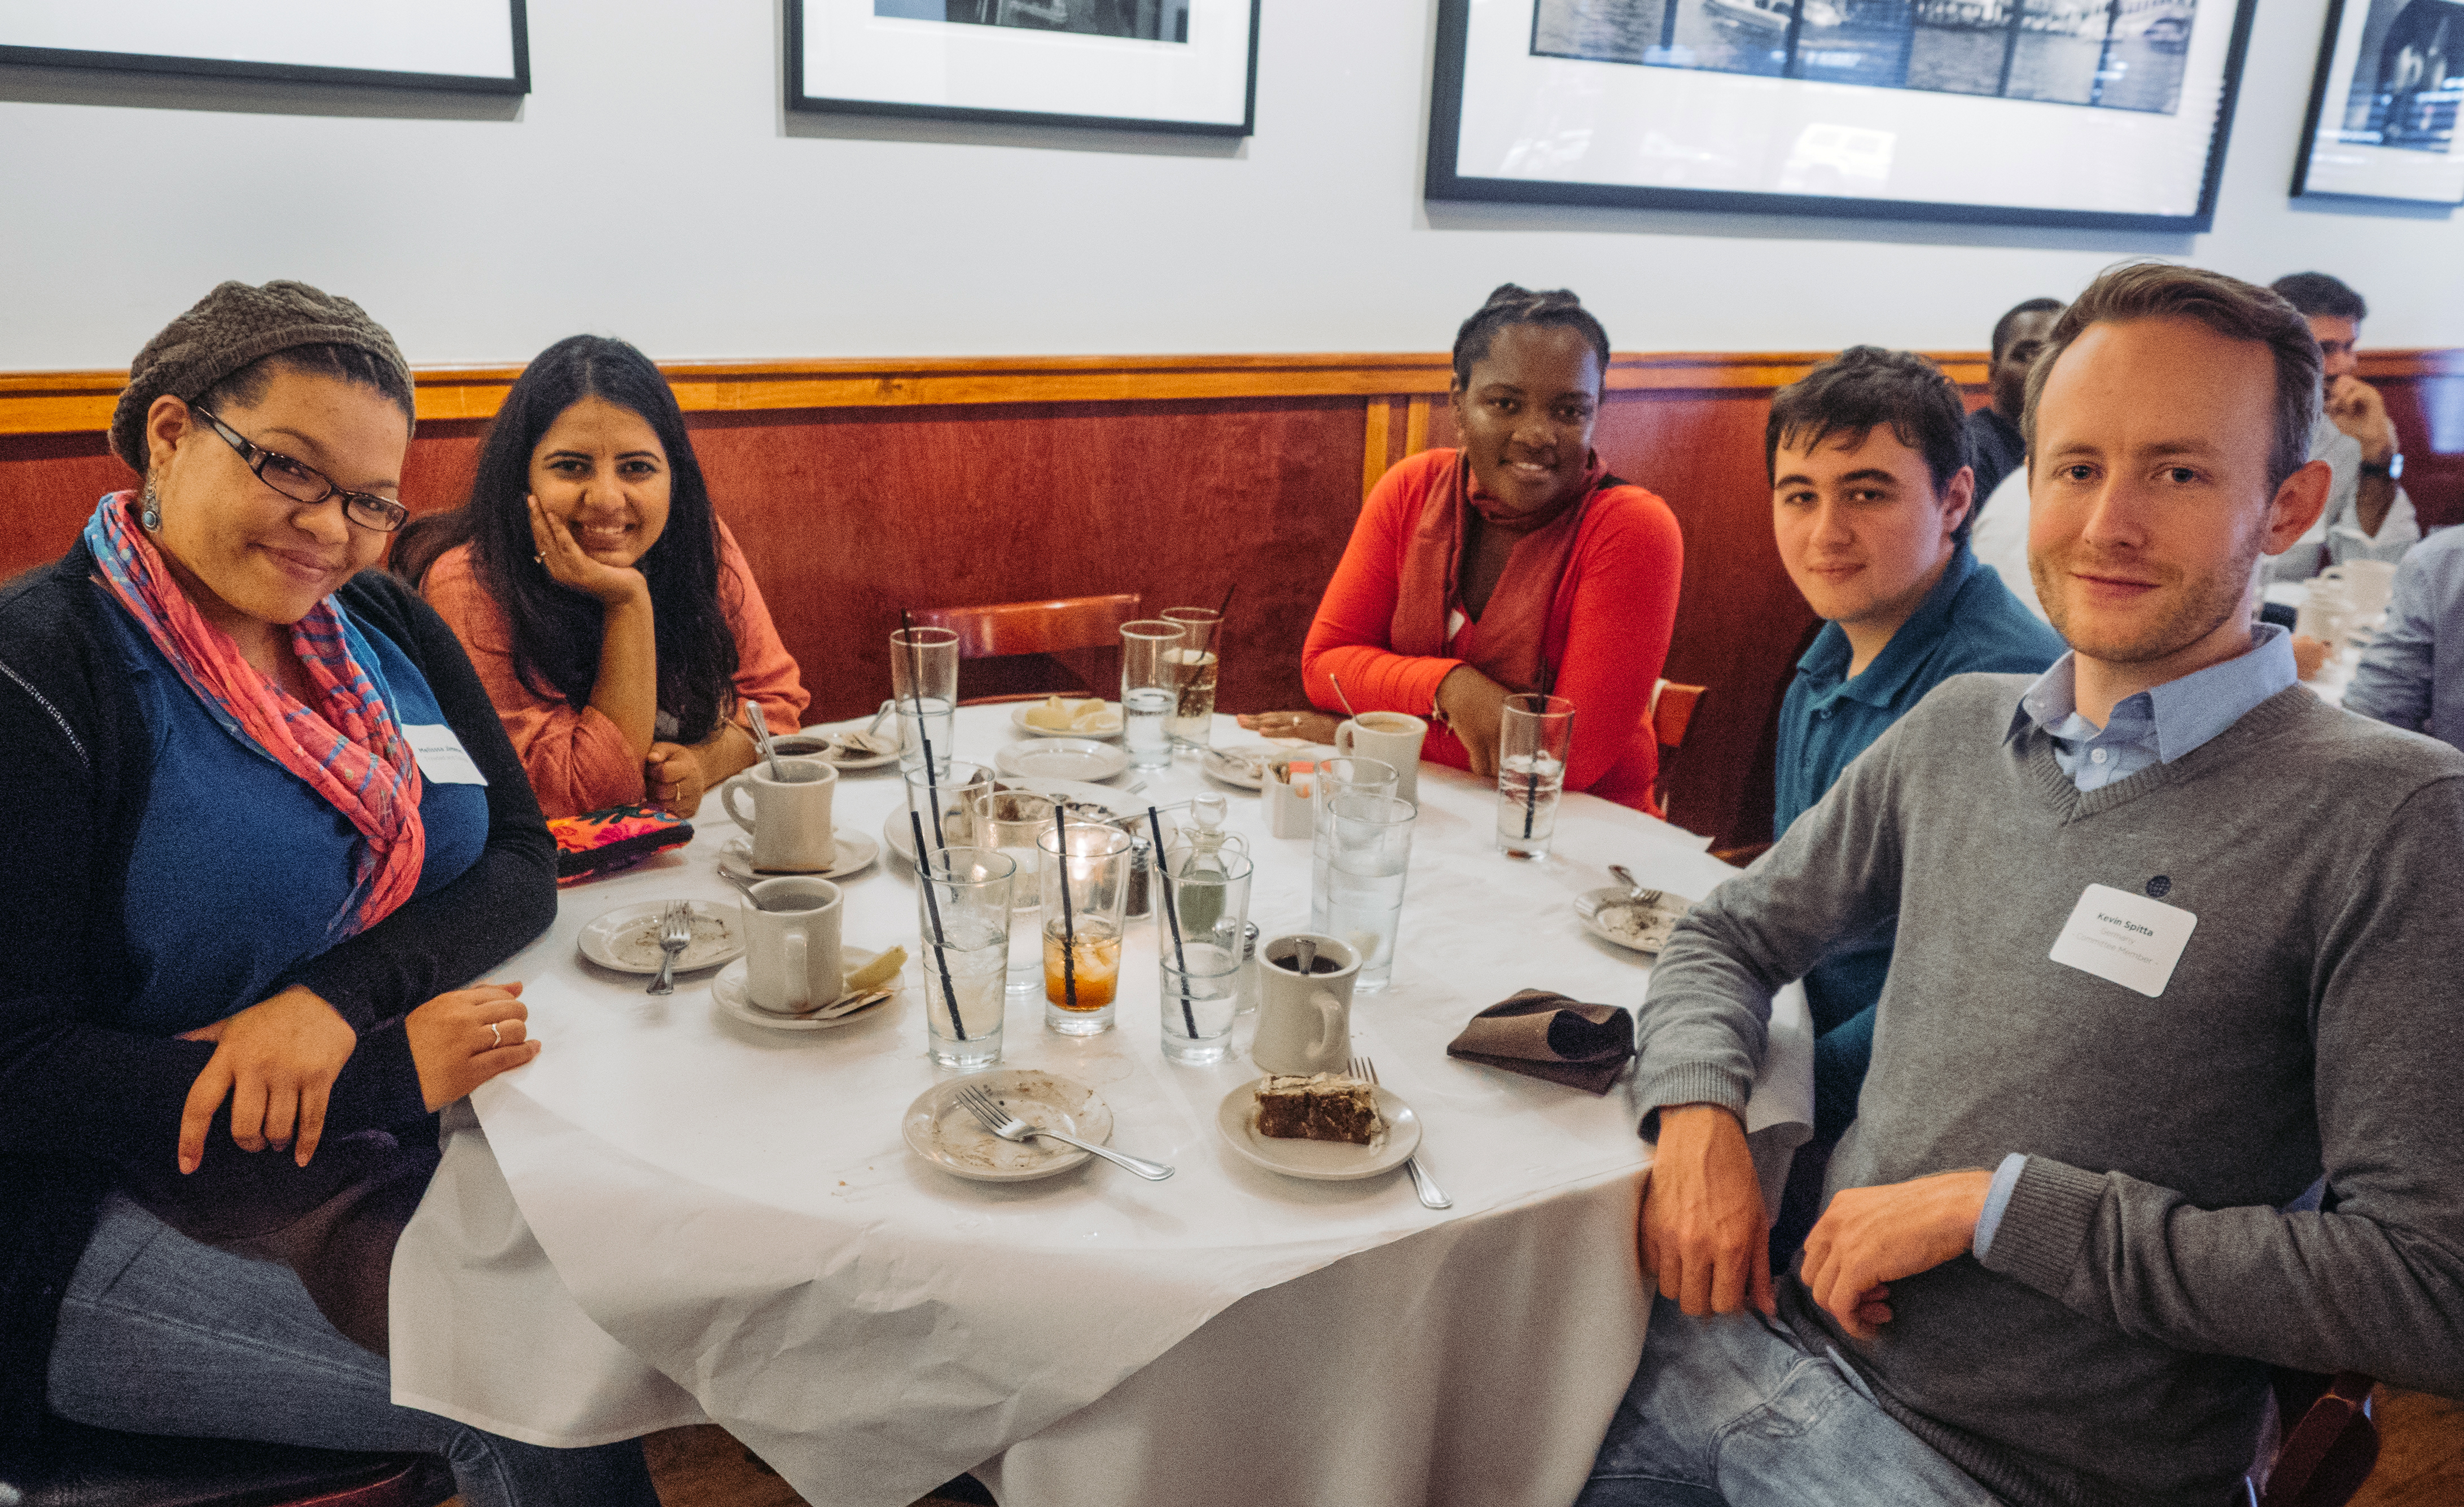 Fulbright students and scholars at Francesca's Restaurant in Little Italy. Kevin Spitta (first on the right) has joined the communications efforts for the chapter.